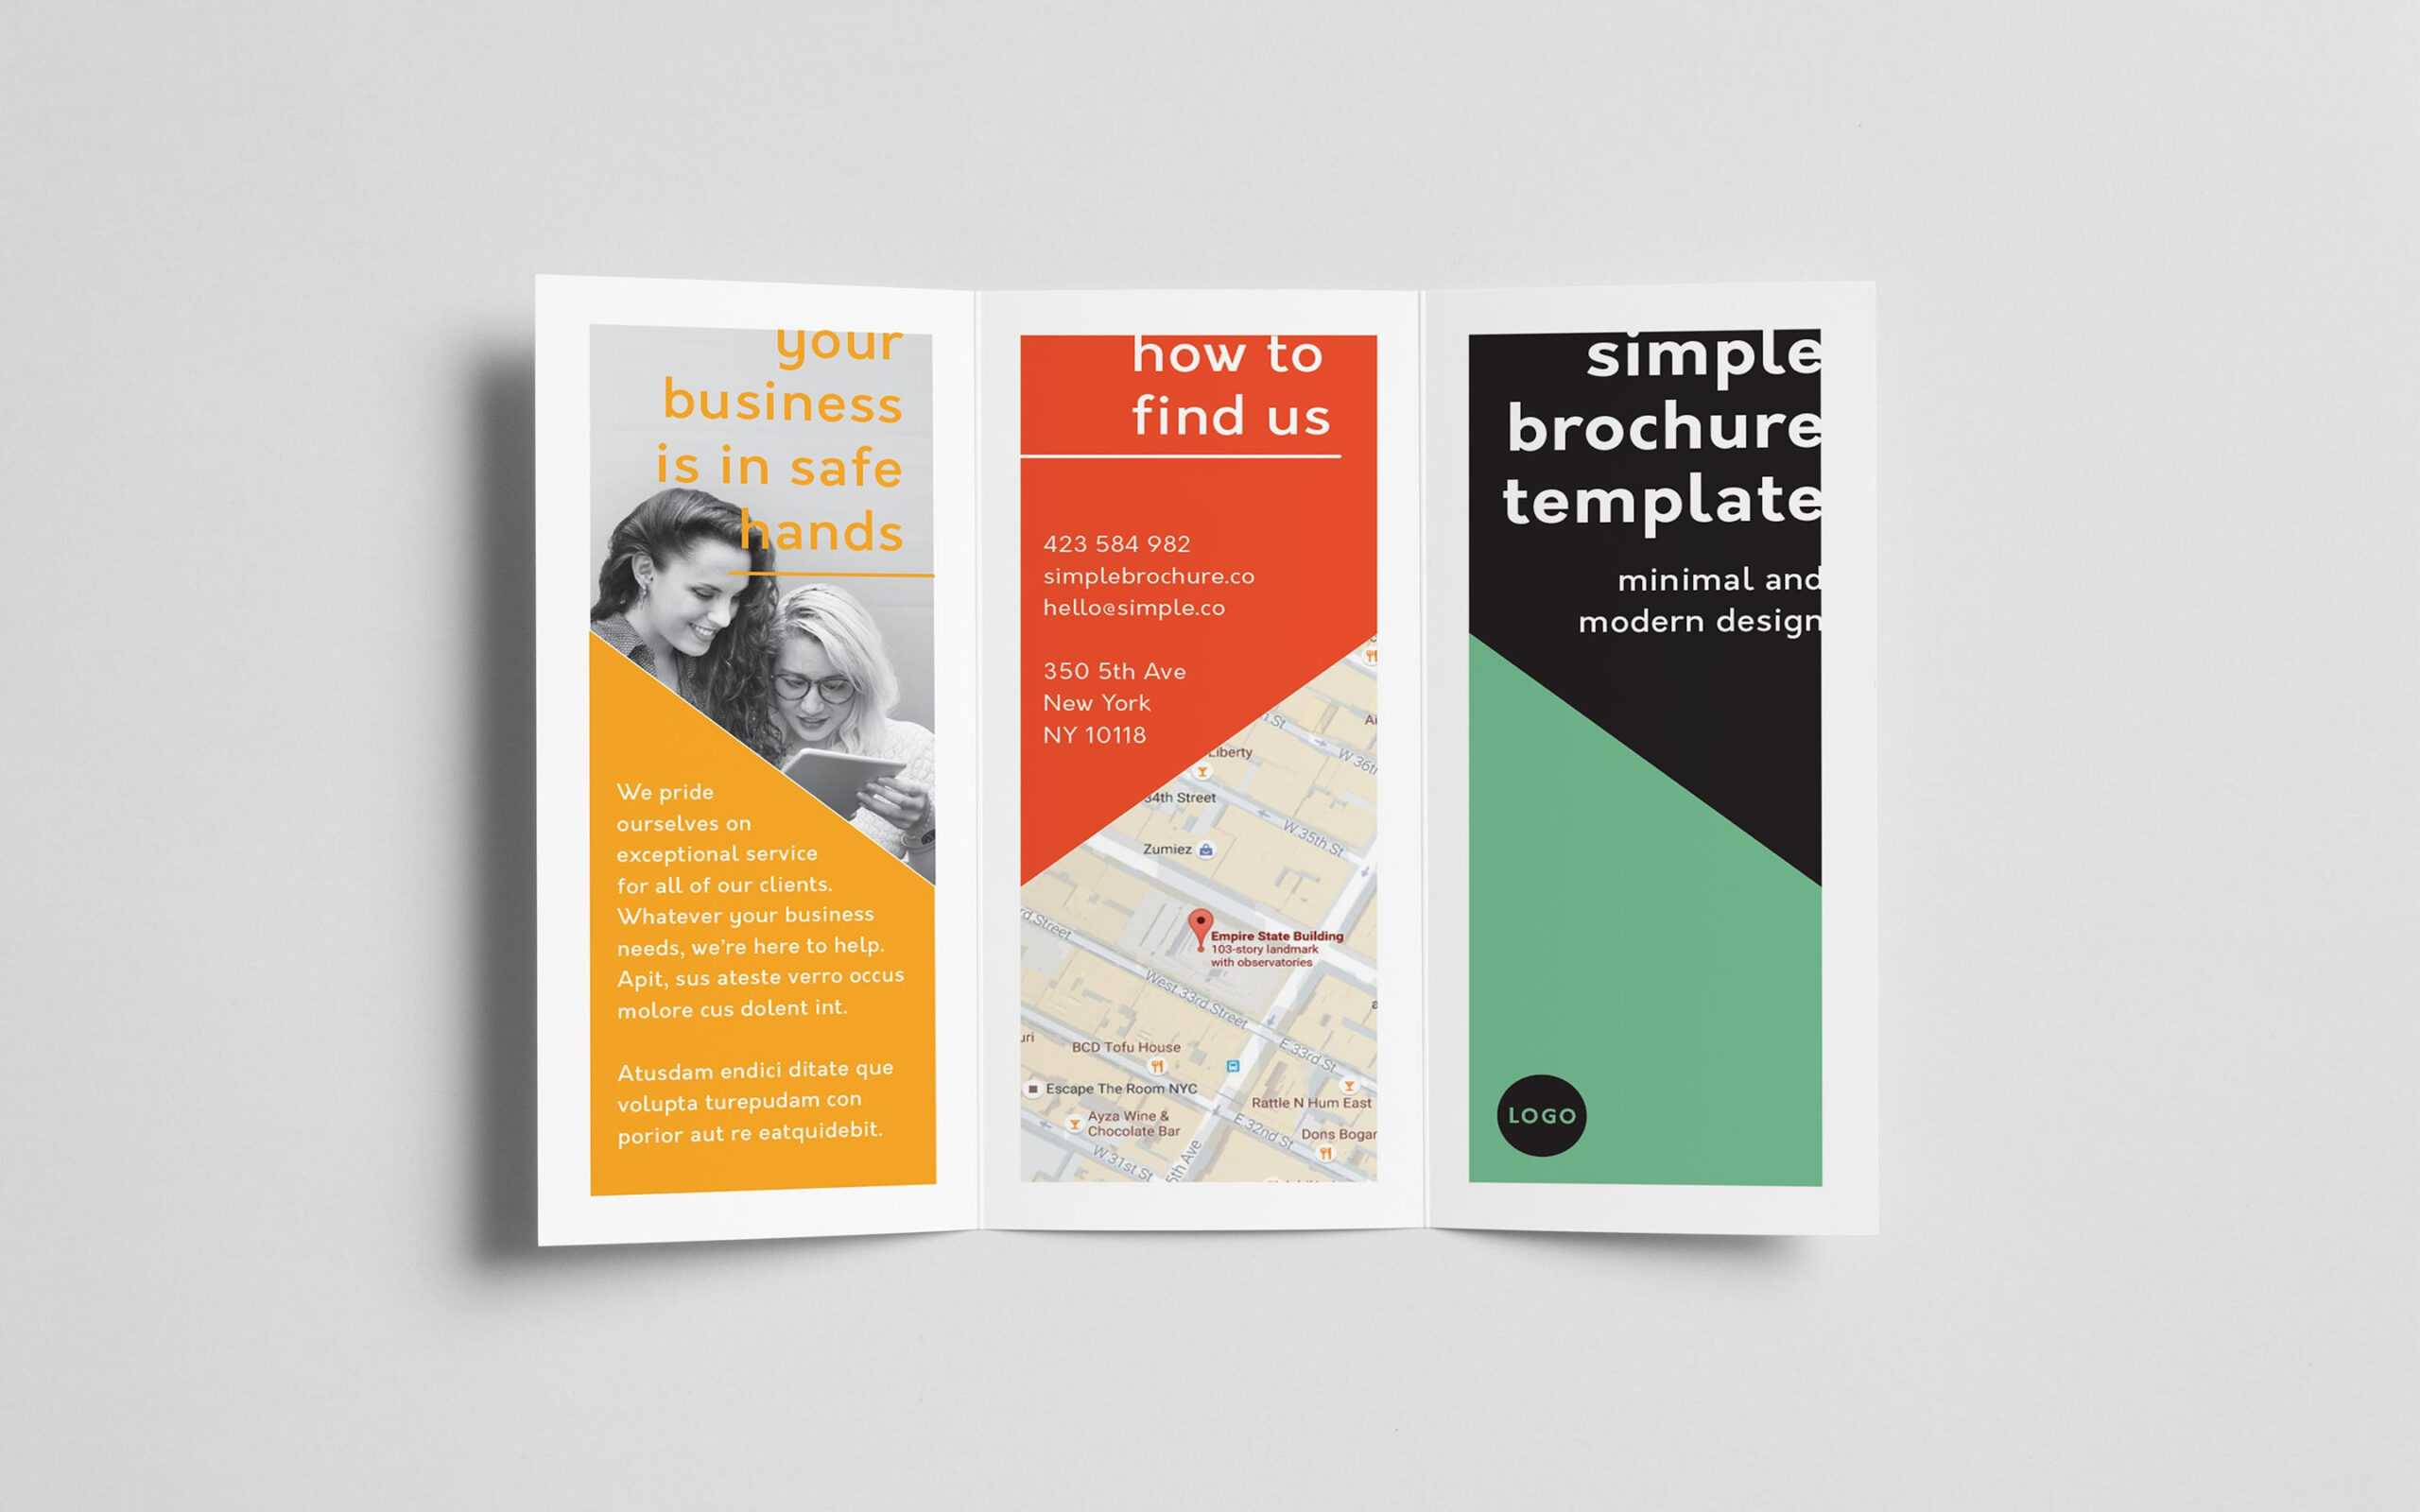 How To Create A Trifold Brochure In Adobe Indesign Intended For Adobe Indesign Tri Fold Brochure Template